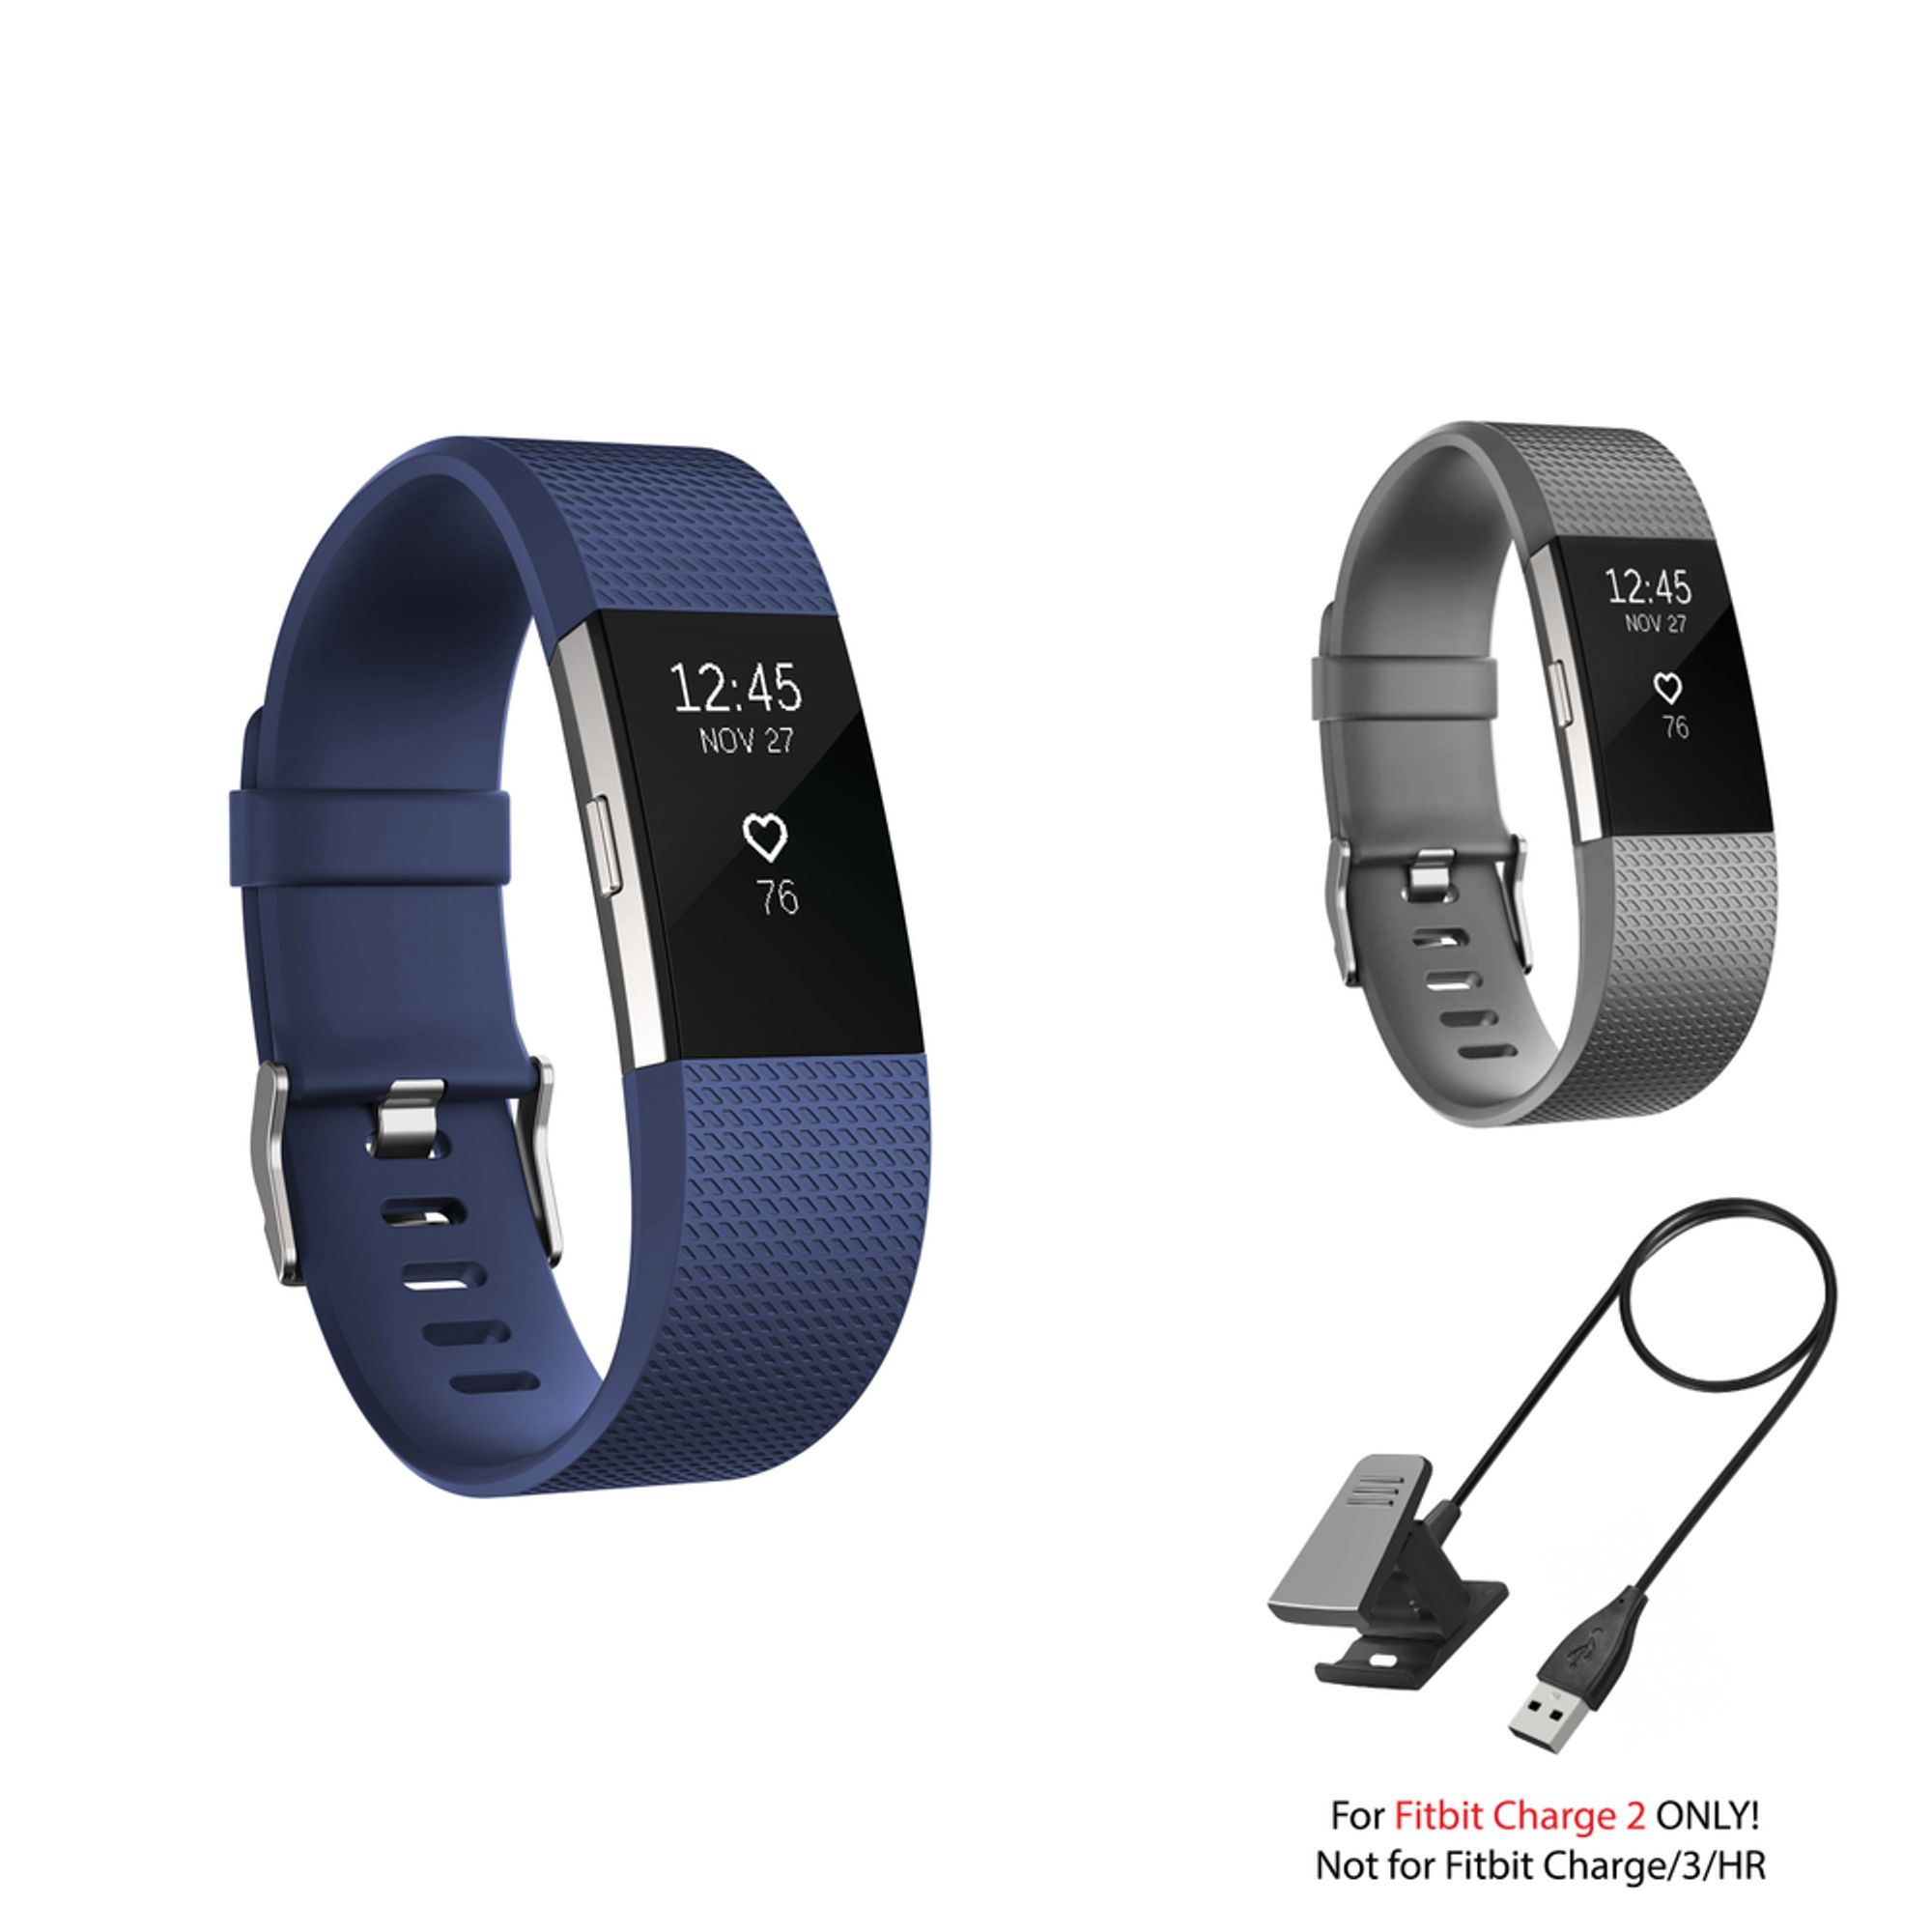 Fitbit Charge 2 Bands and Fitbit Charge 2 Charger by Zodaca 2 pcs (Gray & Dark Blue) Replacement Bands Rubber Wristband Fashion Sport Strap with Metal Buckle and USB Charging Cable for Fitbit Charge 2